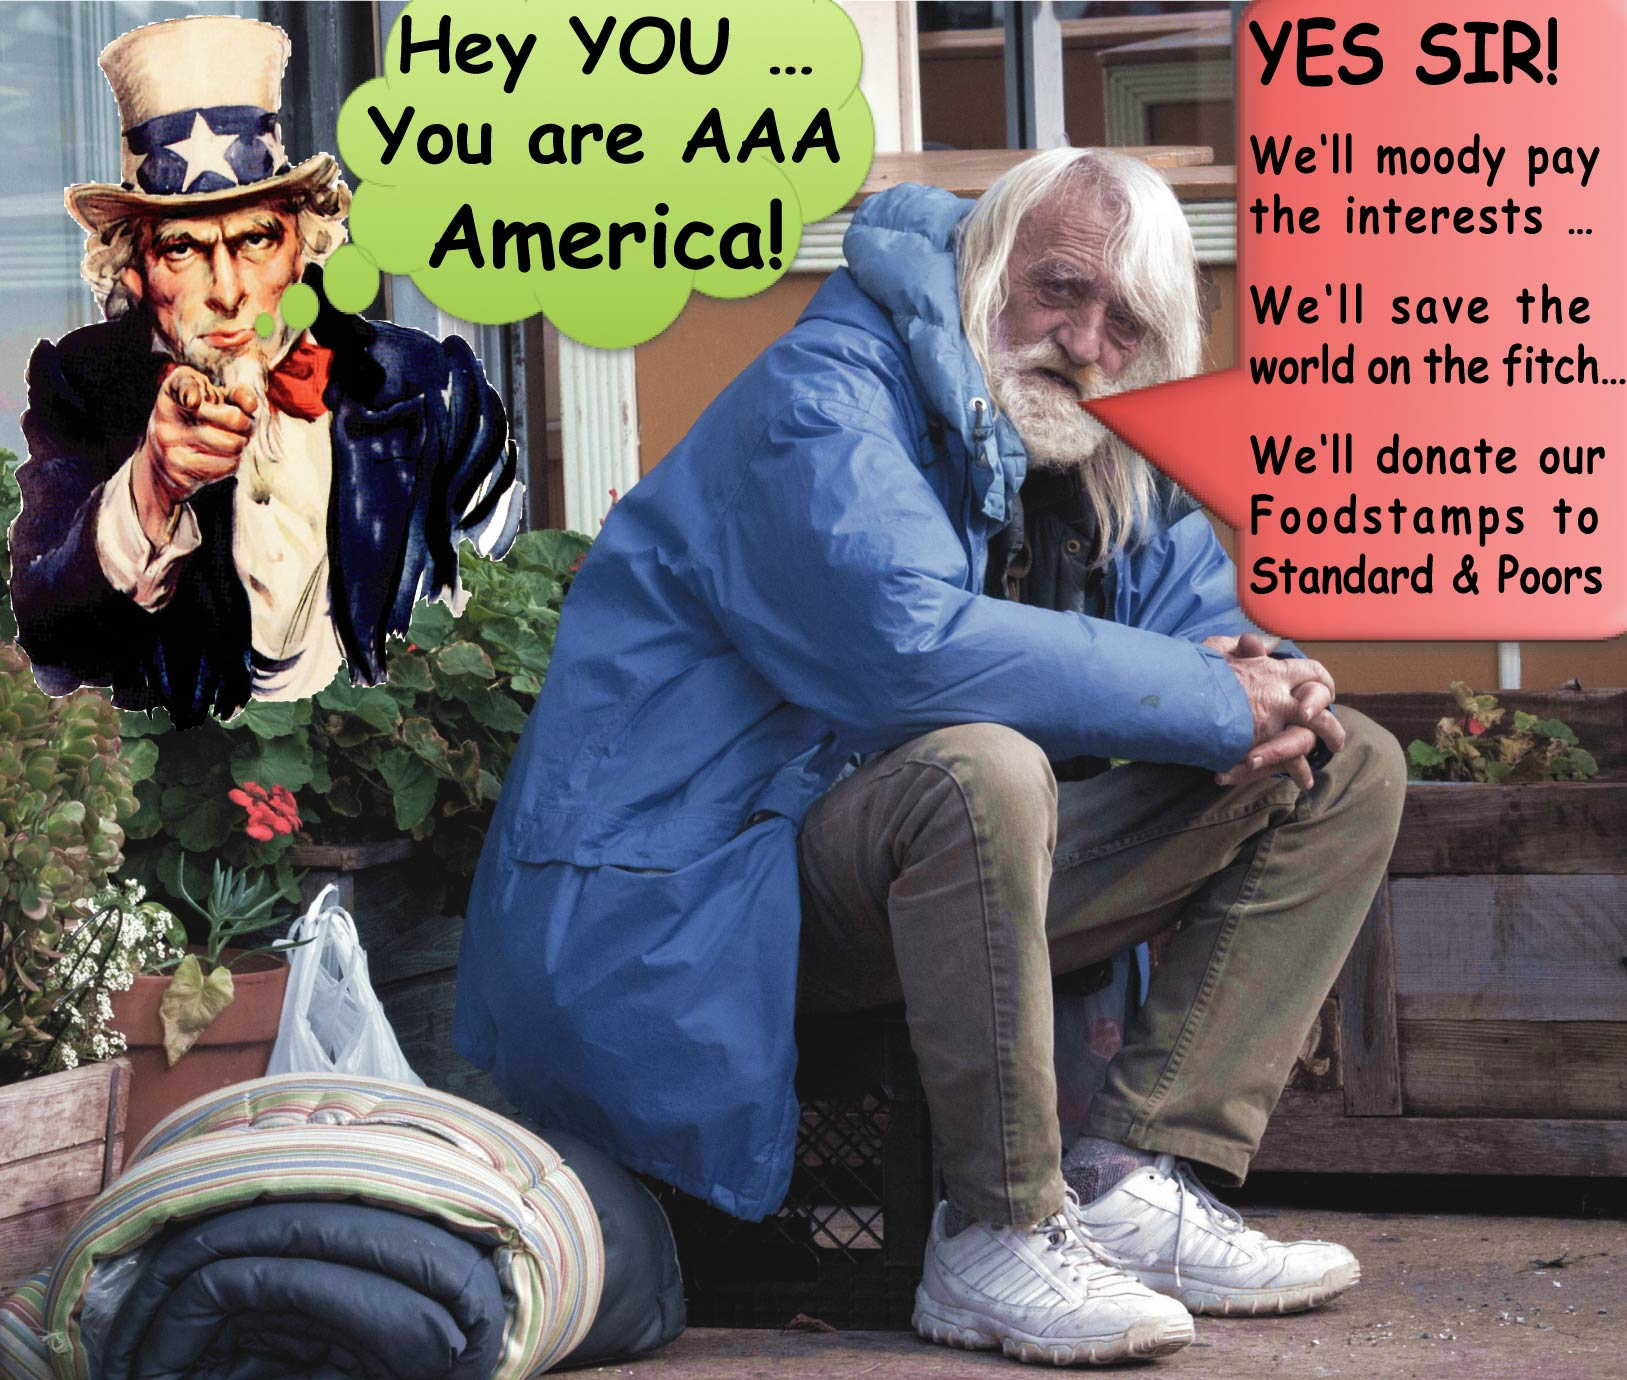 Hey you are AAA America